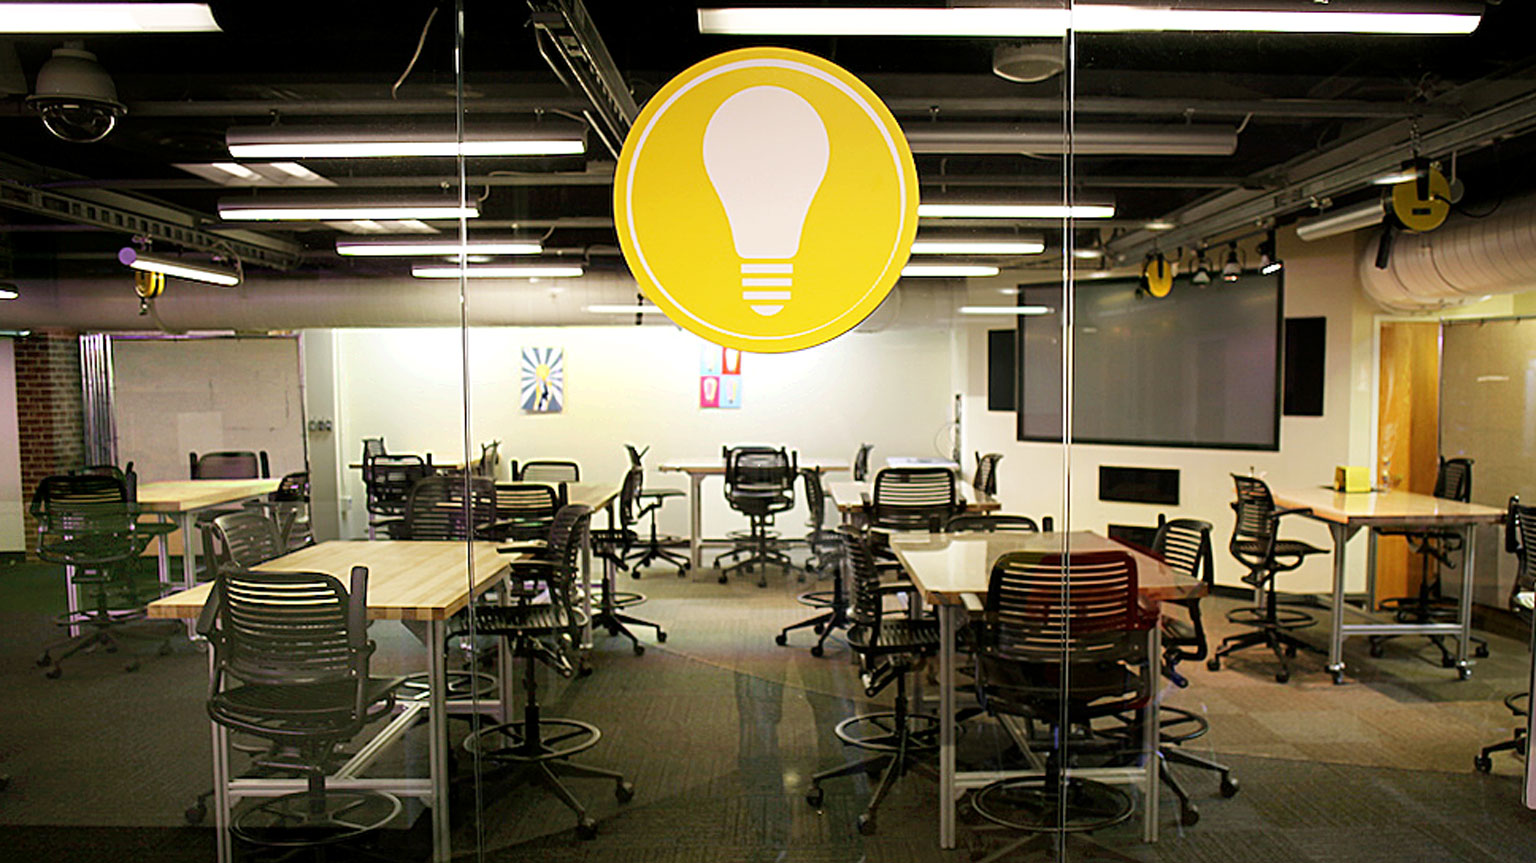 View into a classroom full of rolling tables and chairs, a presentation screen in the background, and a large lightbulb symbol hanging from the glass wall in center-view..